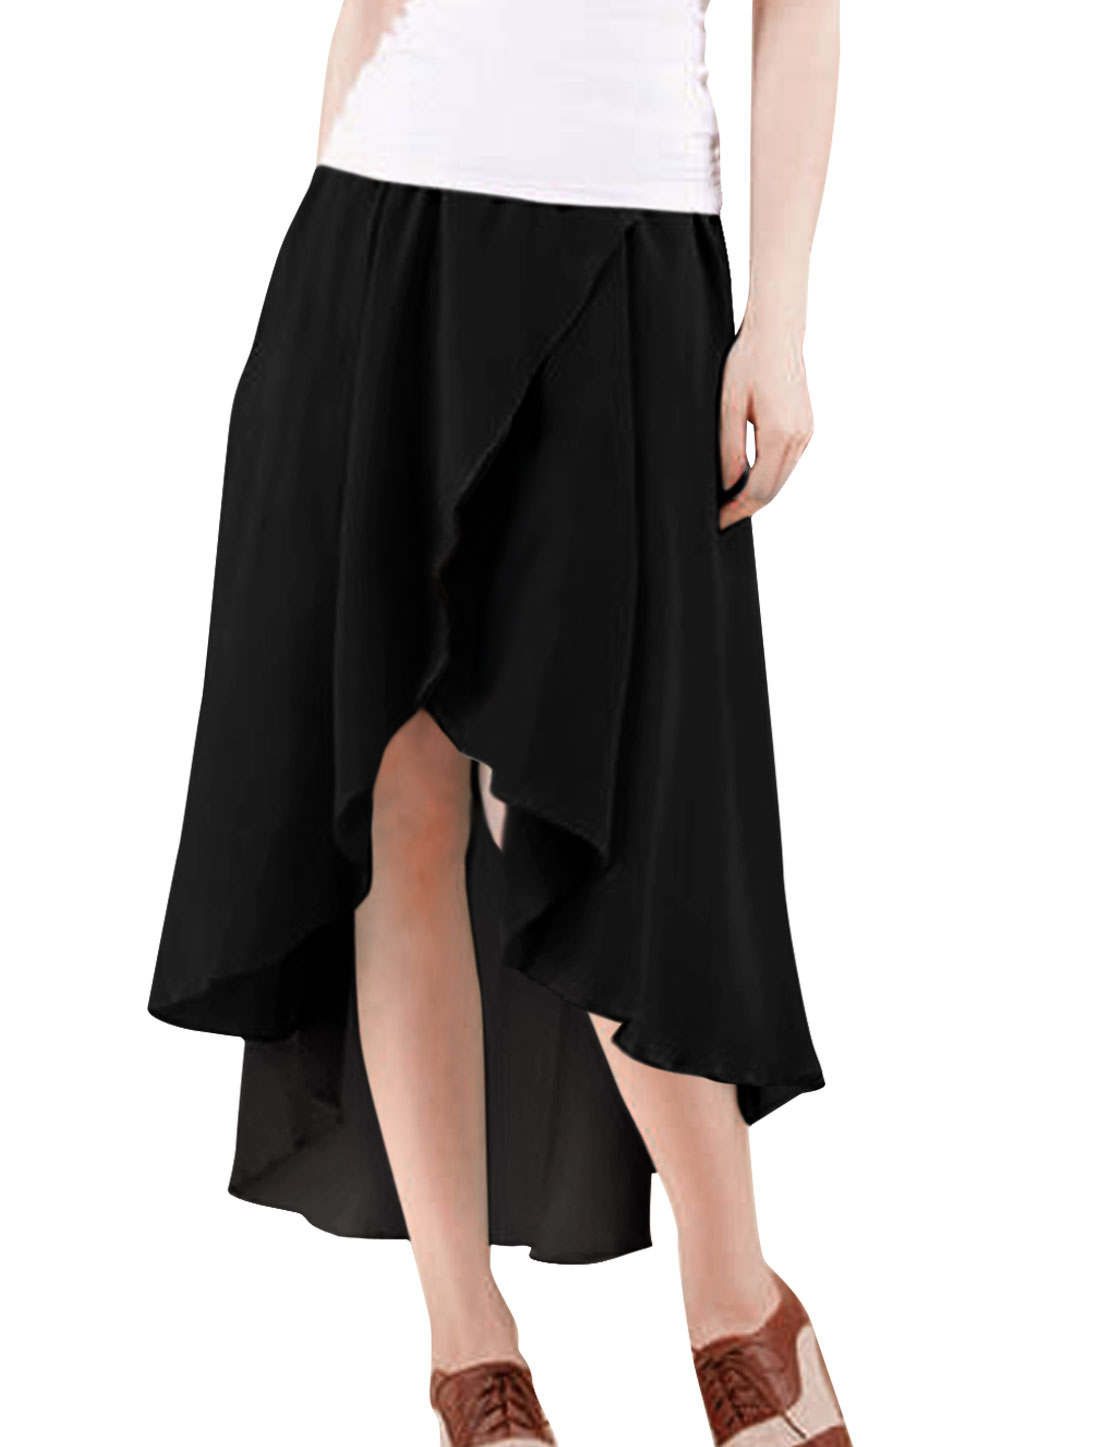 NEW Style Pure Black Color Low-High Hem Knee-Length Skirt XL for Woman